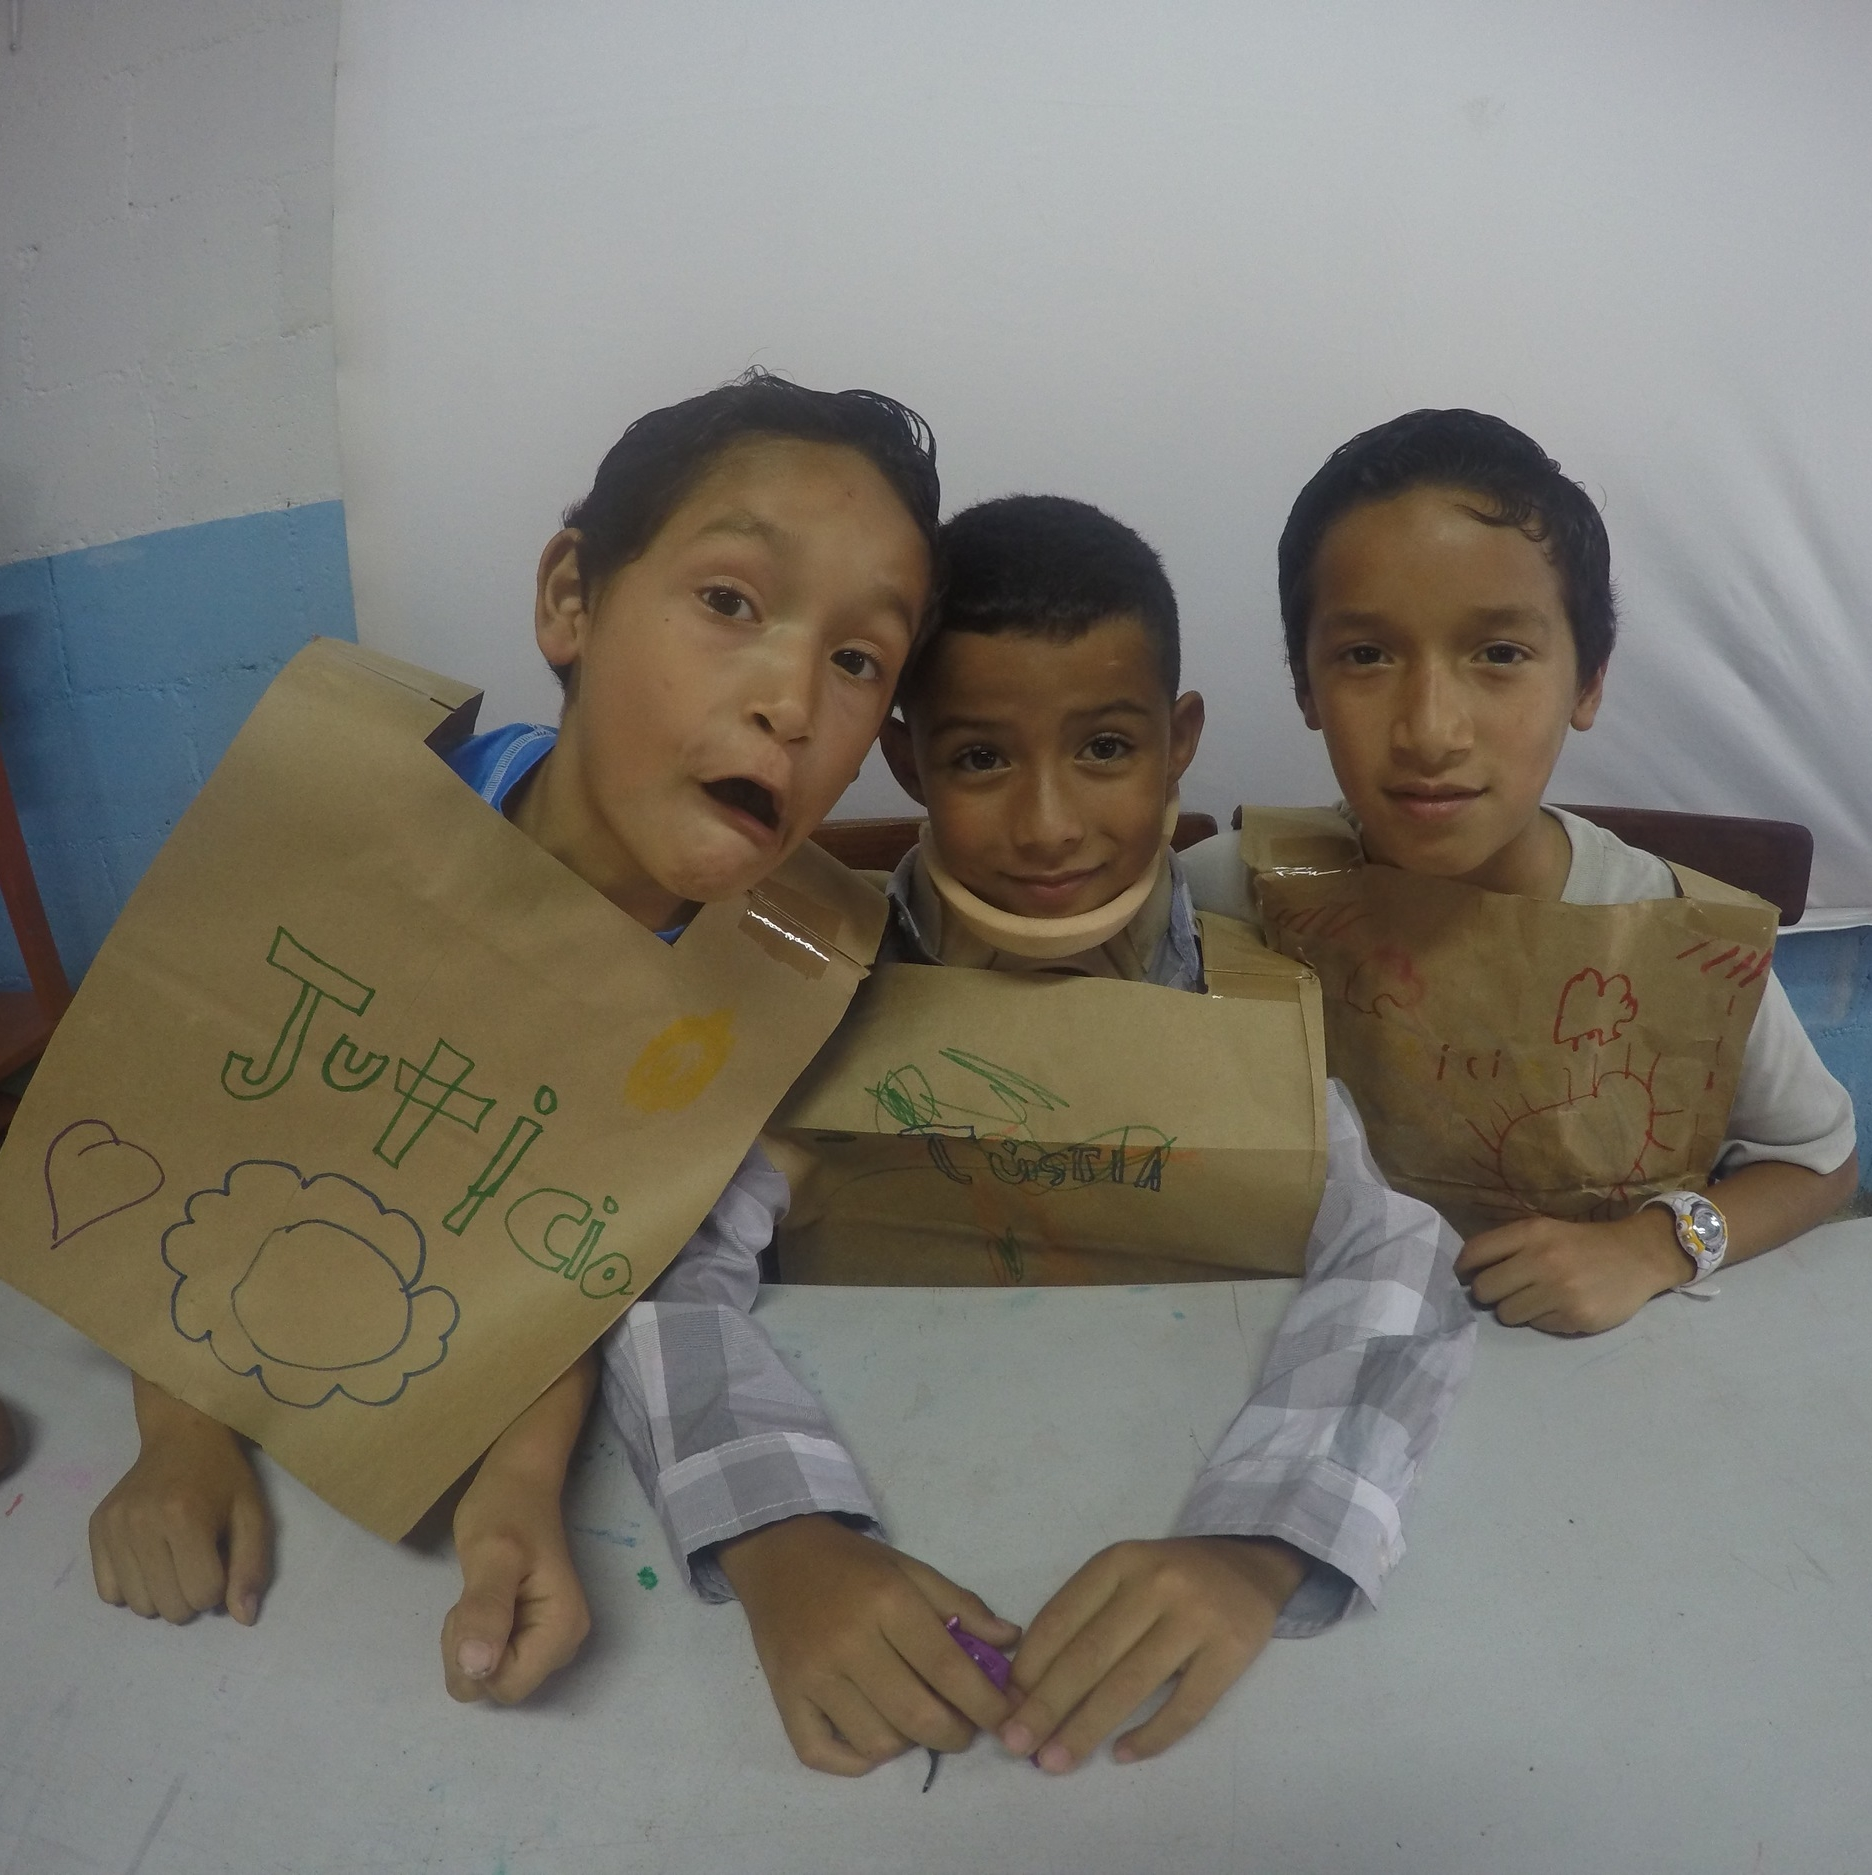 Left to right: Camilo (6), Steven (8), and Javier (10)